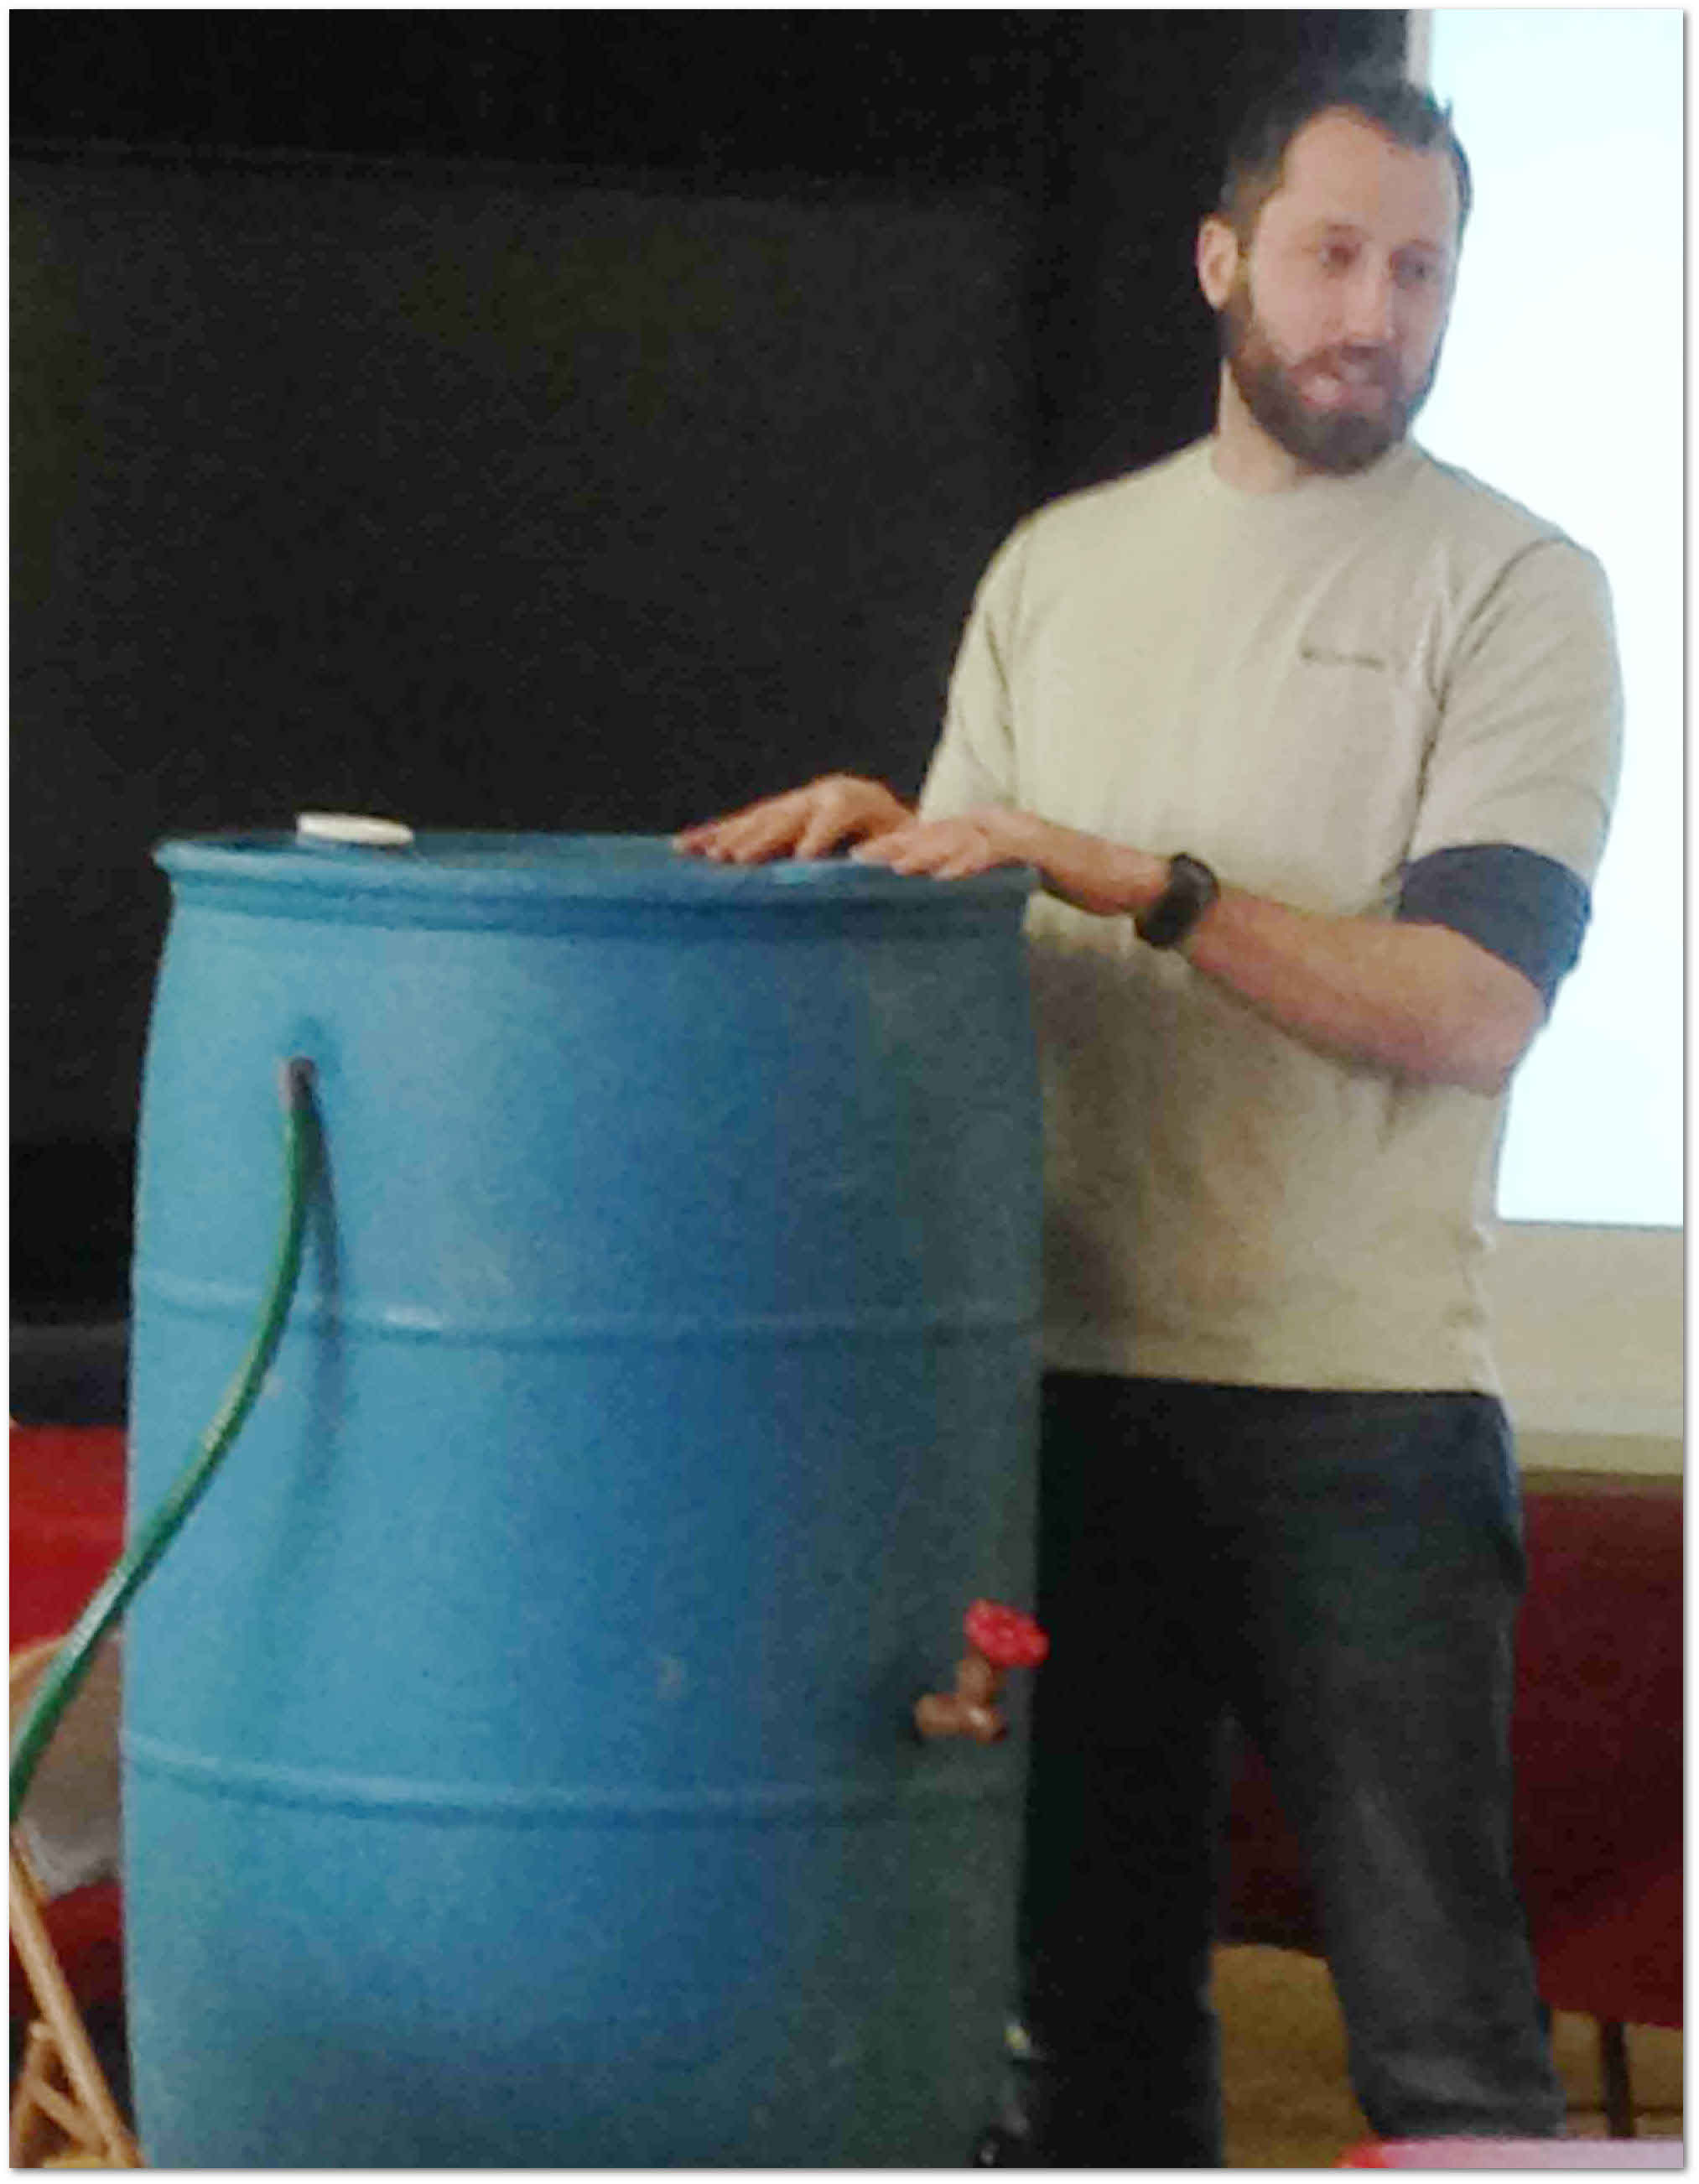 Trevor Weaver, Mifflin County Conservation District's Outreach and Technical Assistant demonstrates how to build a rain barrel during the workshop held in Burnham on March 19, 2016. Another workshop was held in the Upper Kishacoquillas Creek Watershed in Belleville on March 22. Photo provided by Mifflin County Conservation District.